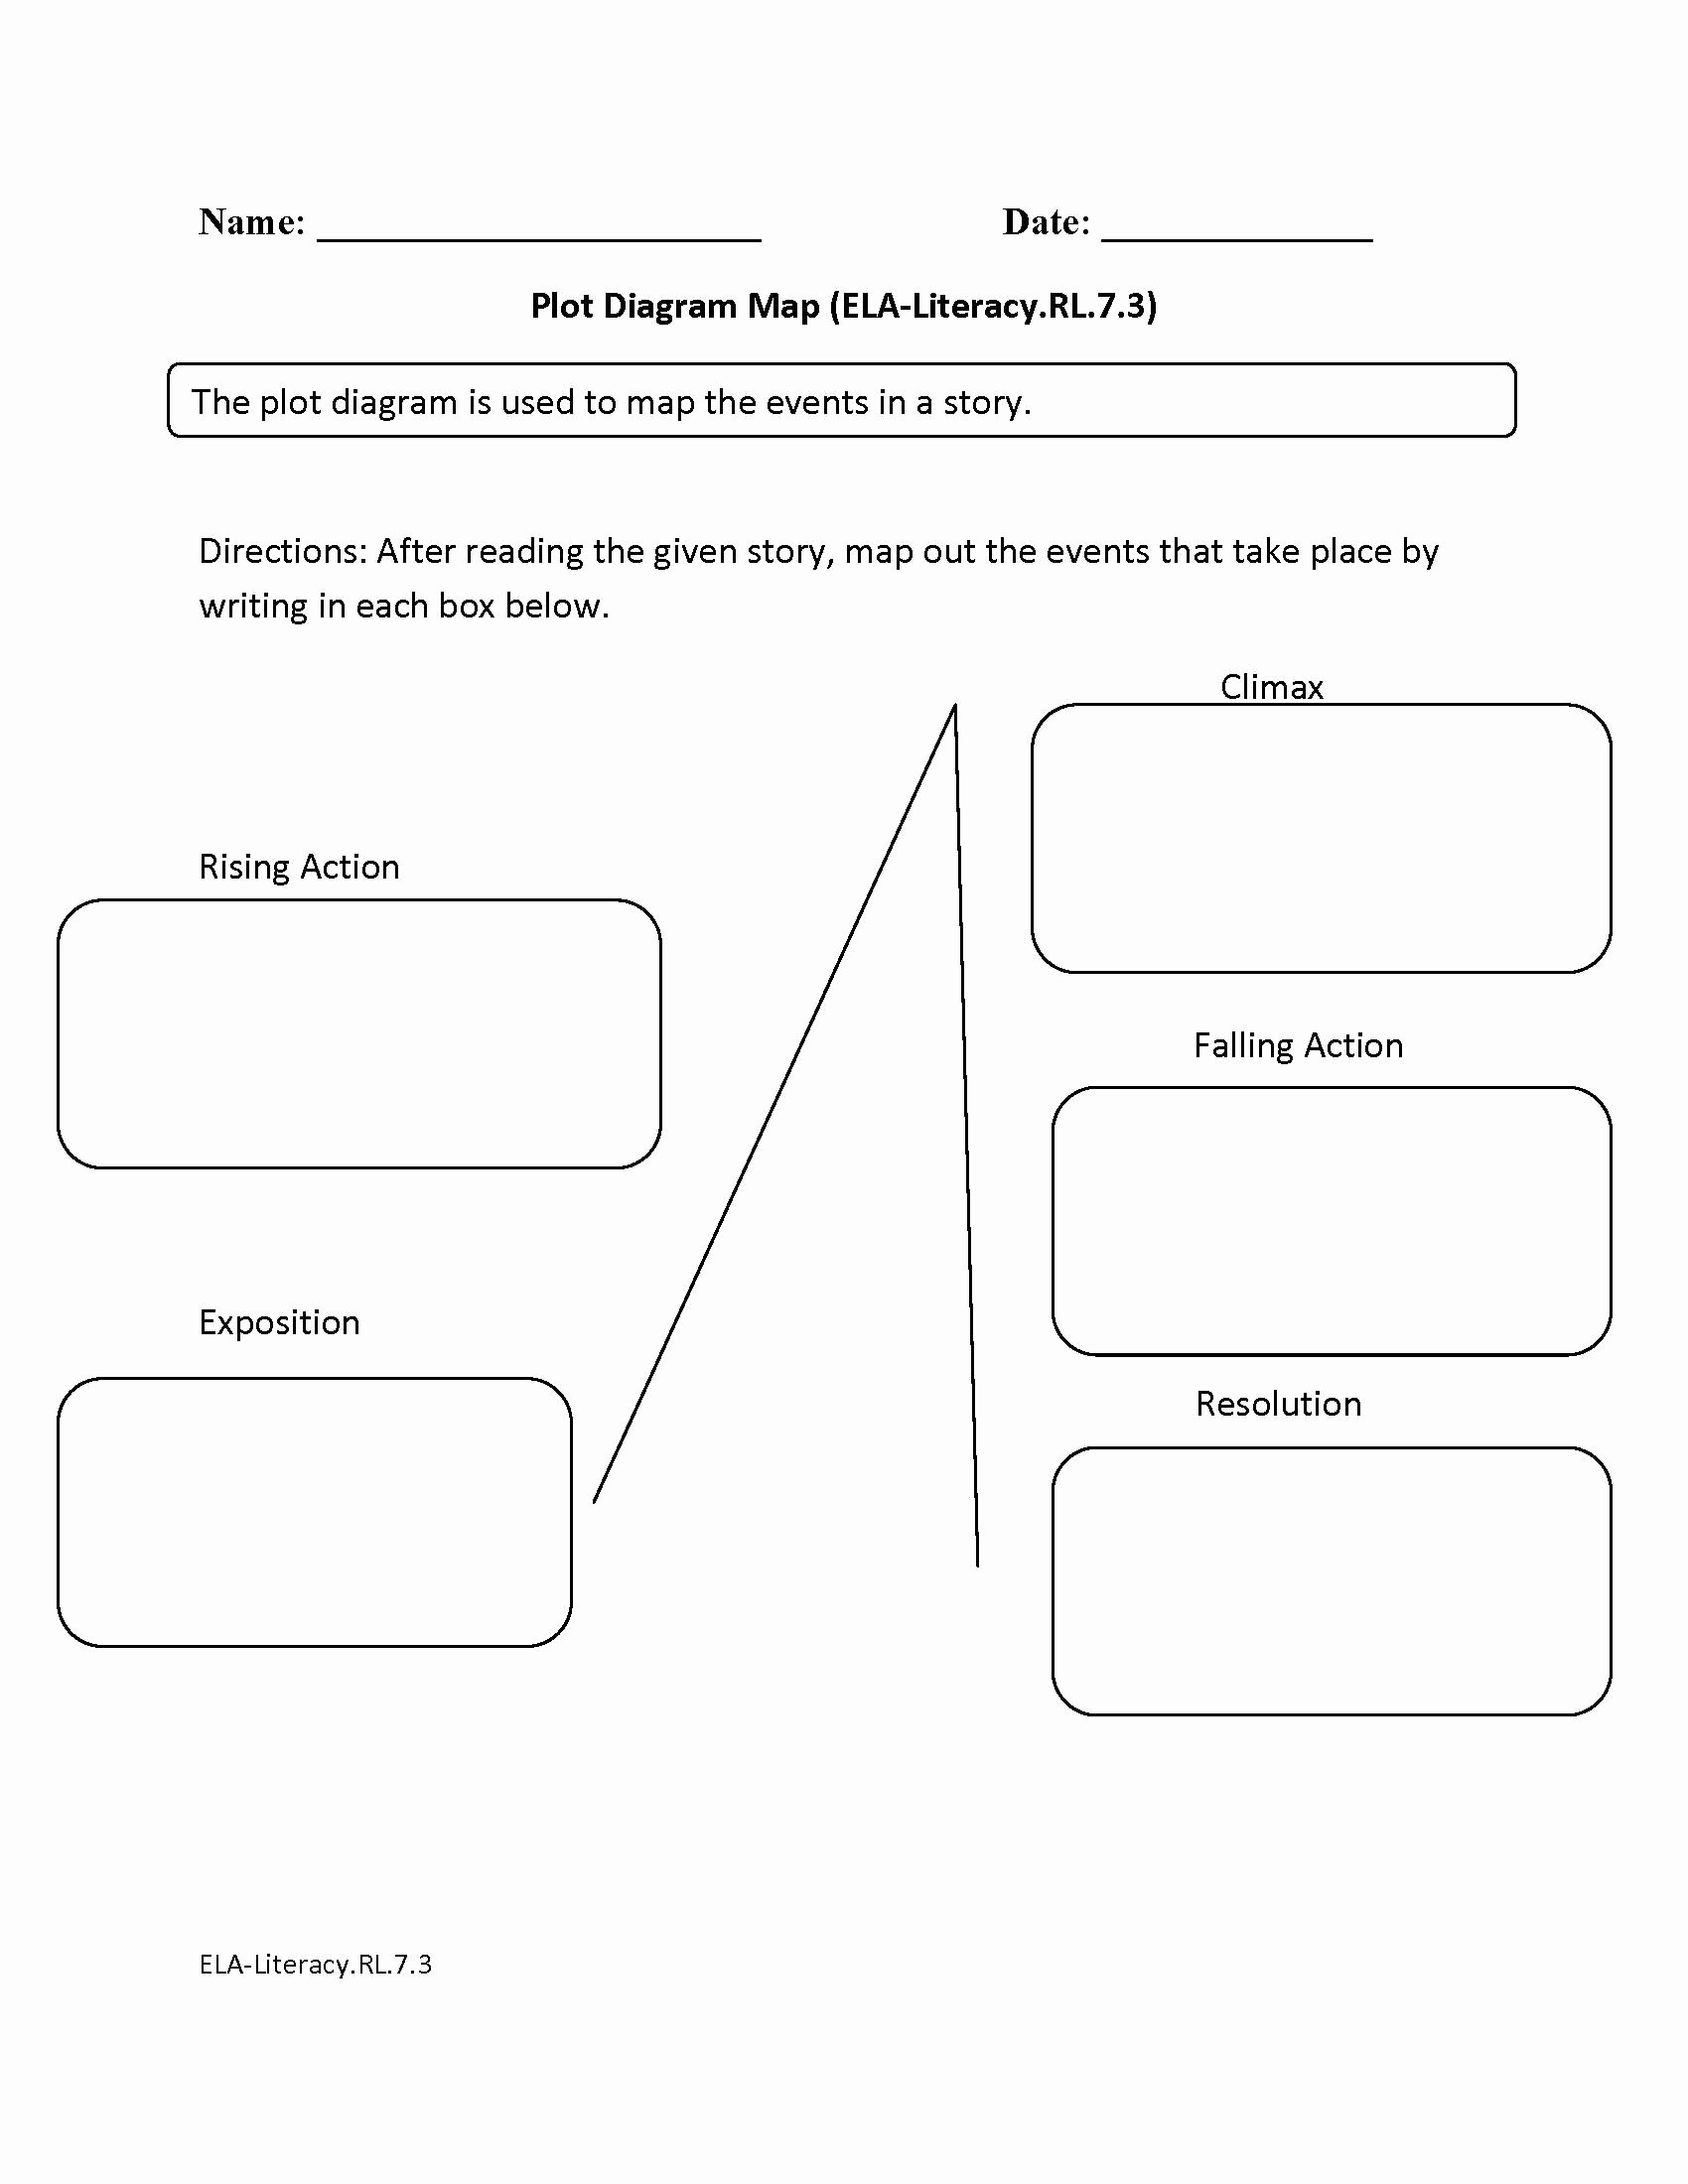 Plot Diagram Worksheet Pdf Inspirational Blank Plot Diagram Worksheet the Best Worksheets Image